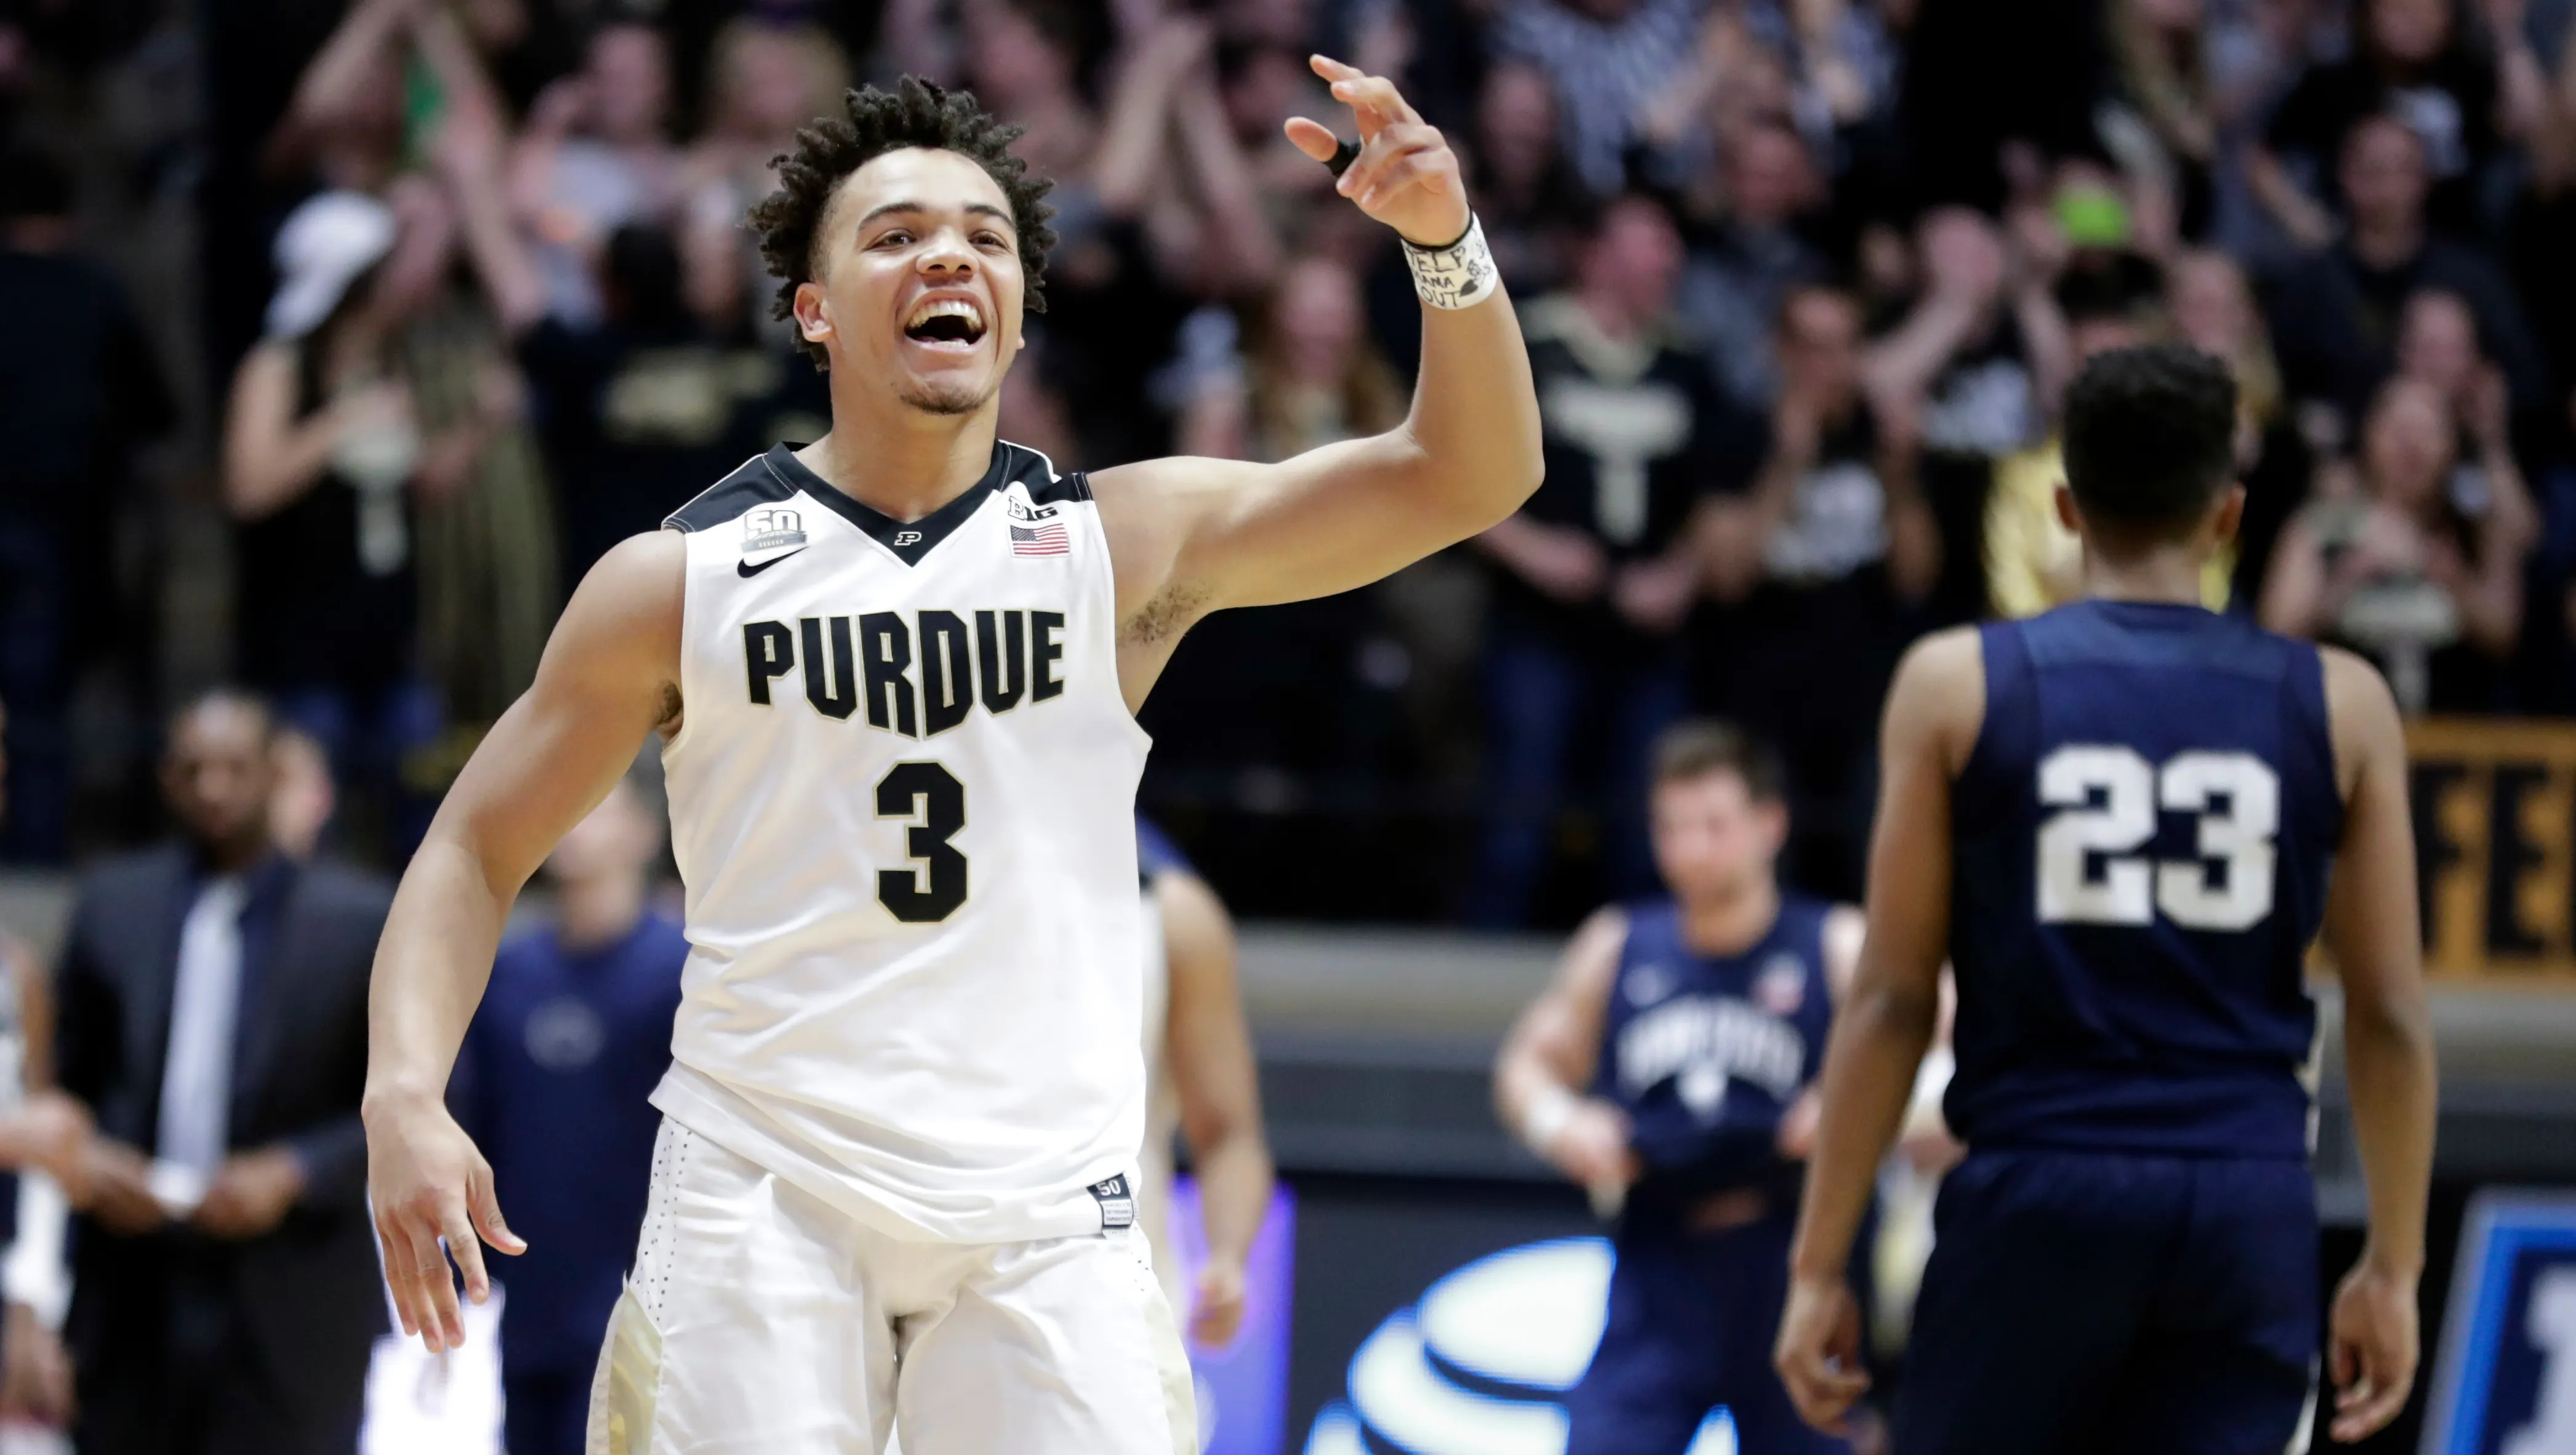 This is the Purdue men's basketball 2018-19 schedule